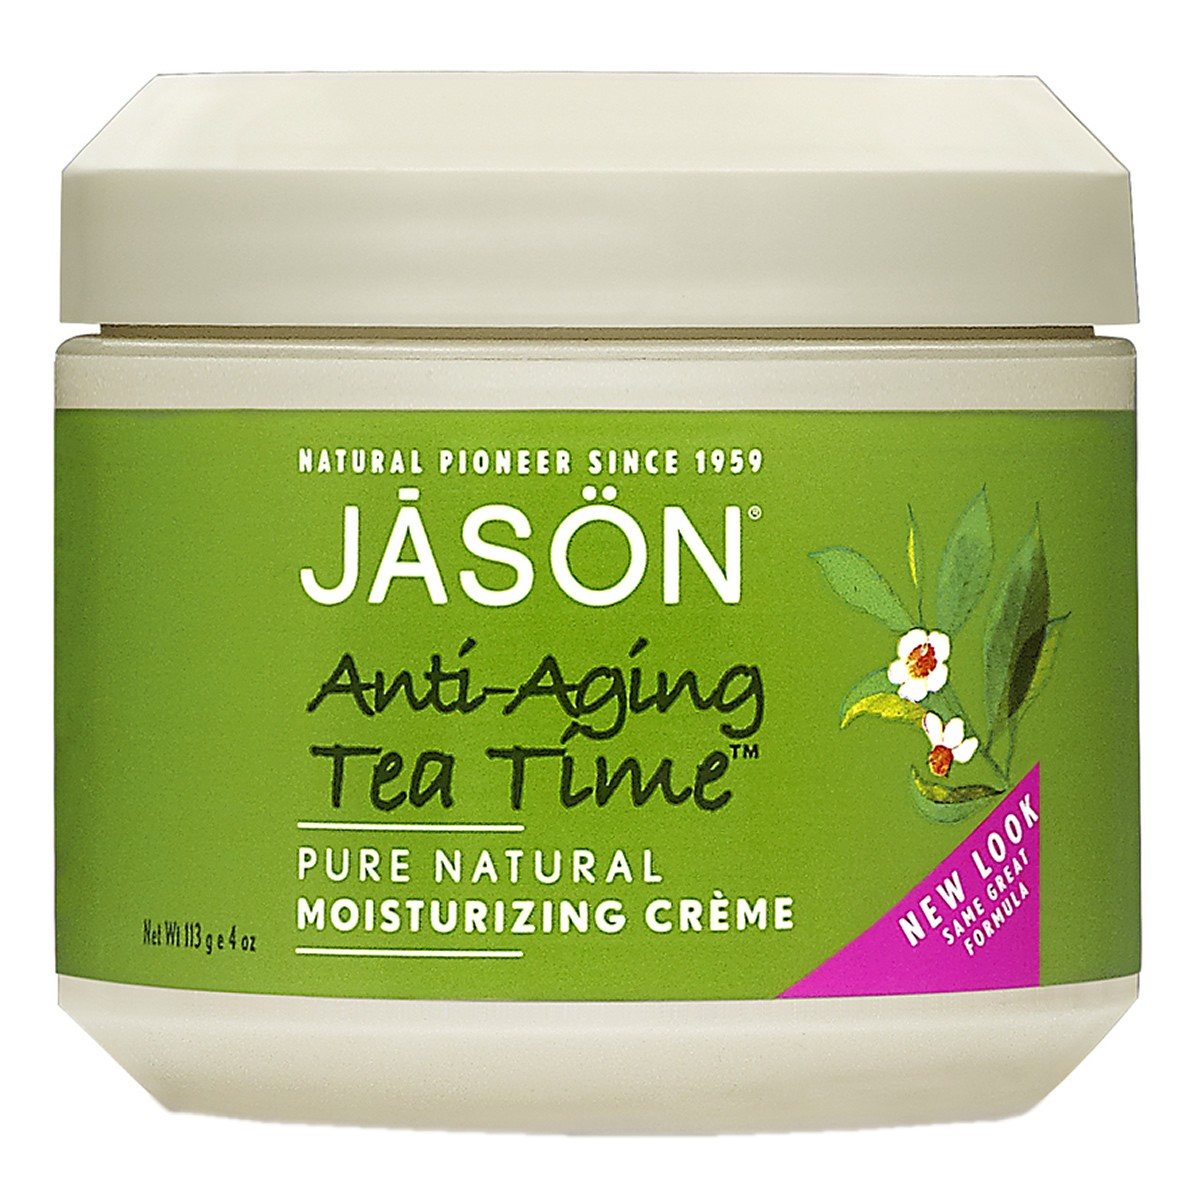 Jason Anti-Aging Tea Time Green Tea Cream